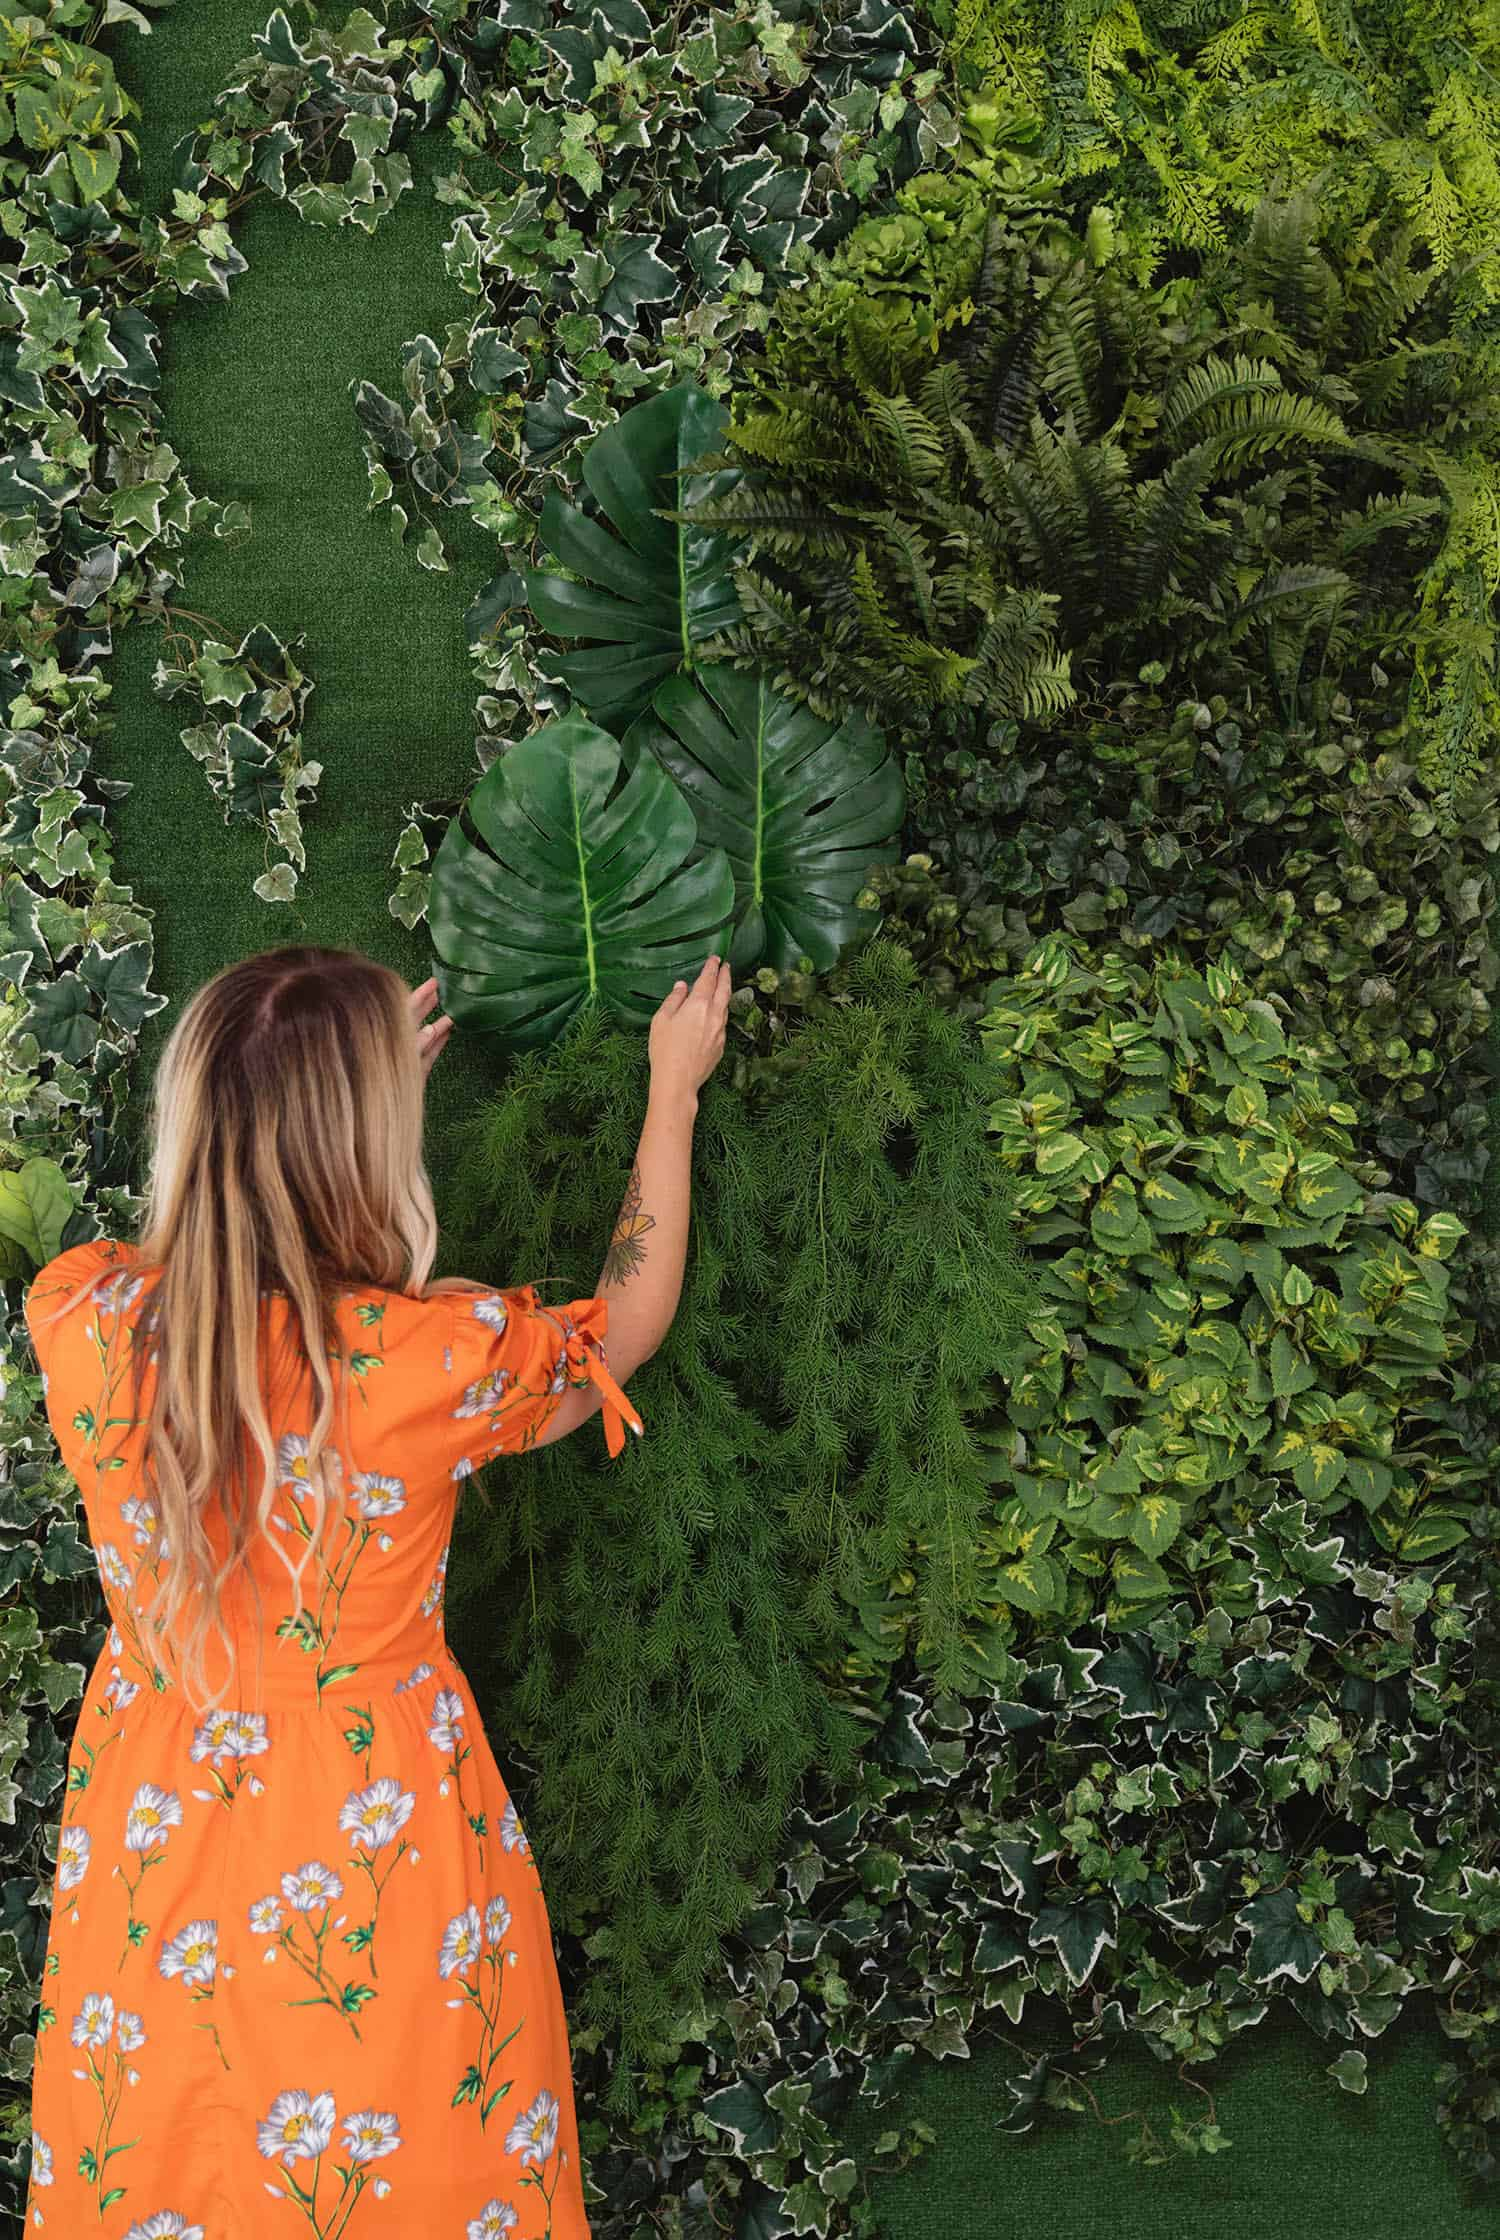 Diy faux living wall d i y project diy home decor